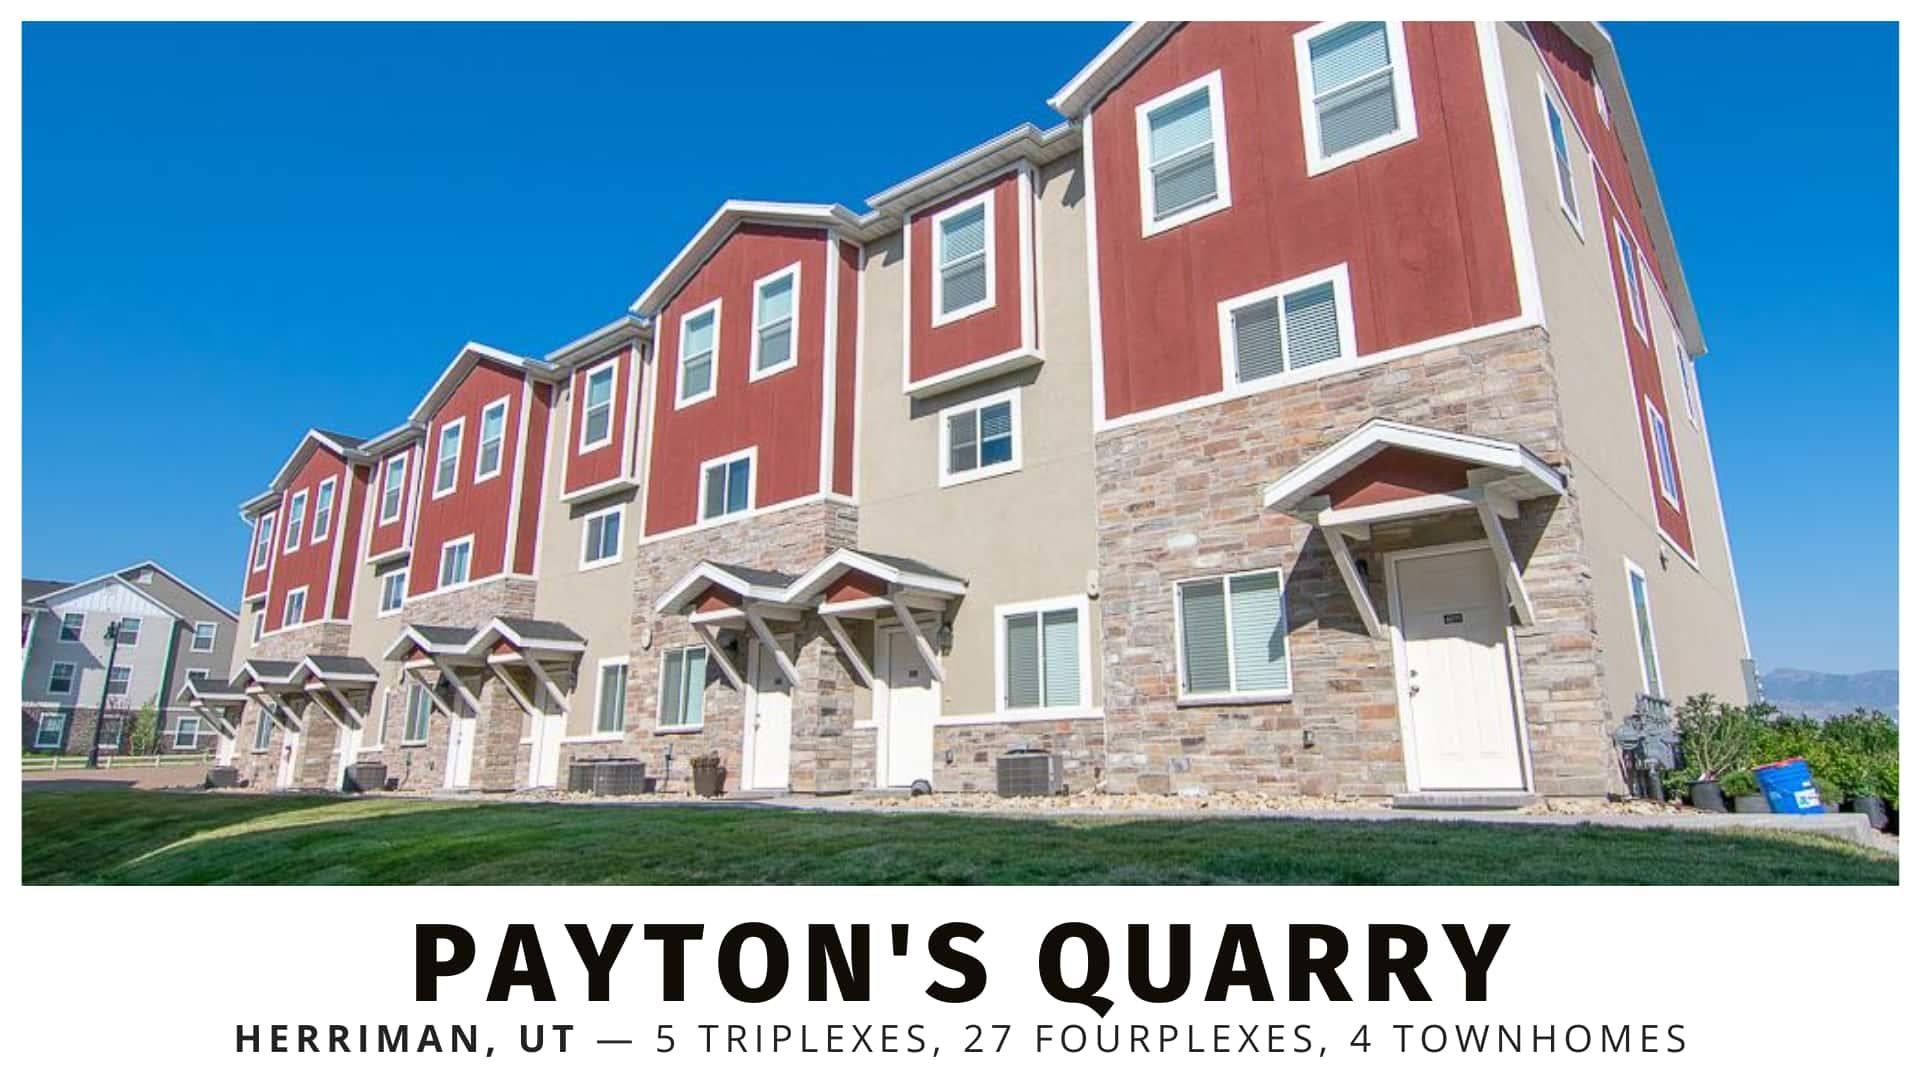 Payton's Quarry triplexes, fourplexes, and townhomes in Salt Lake County